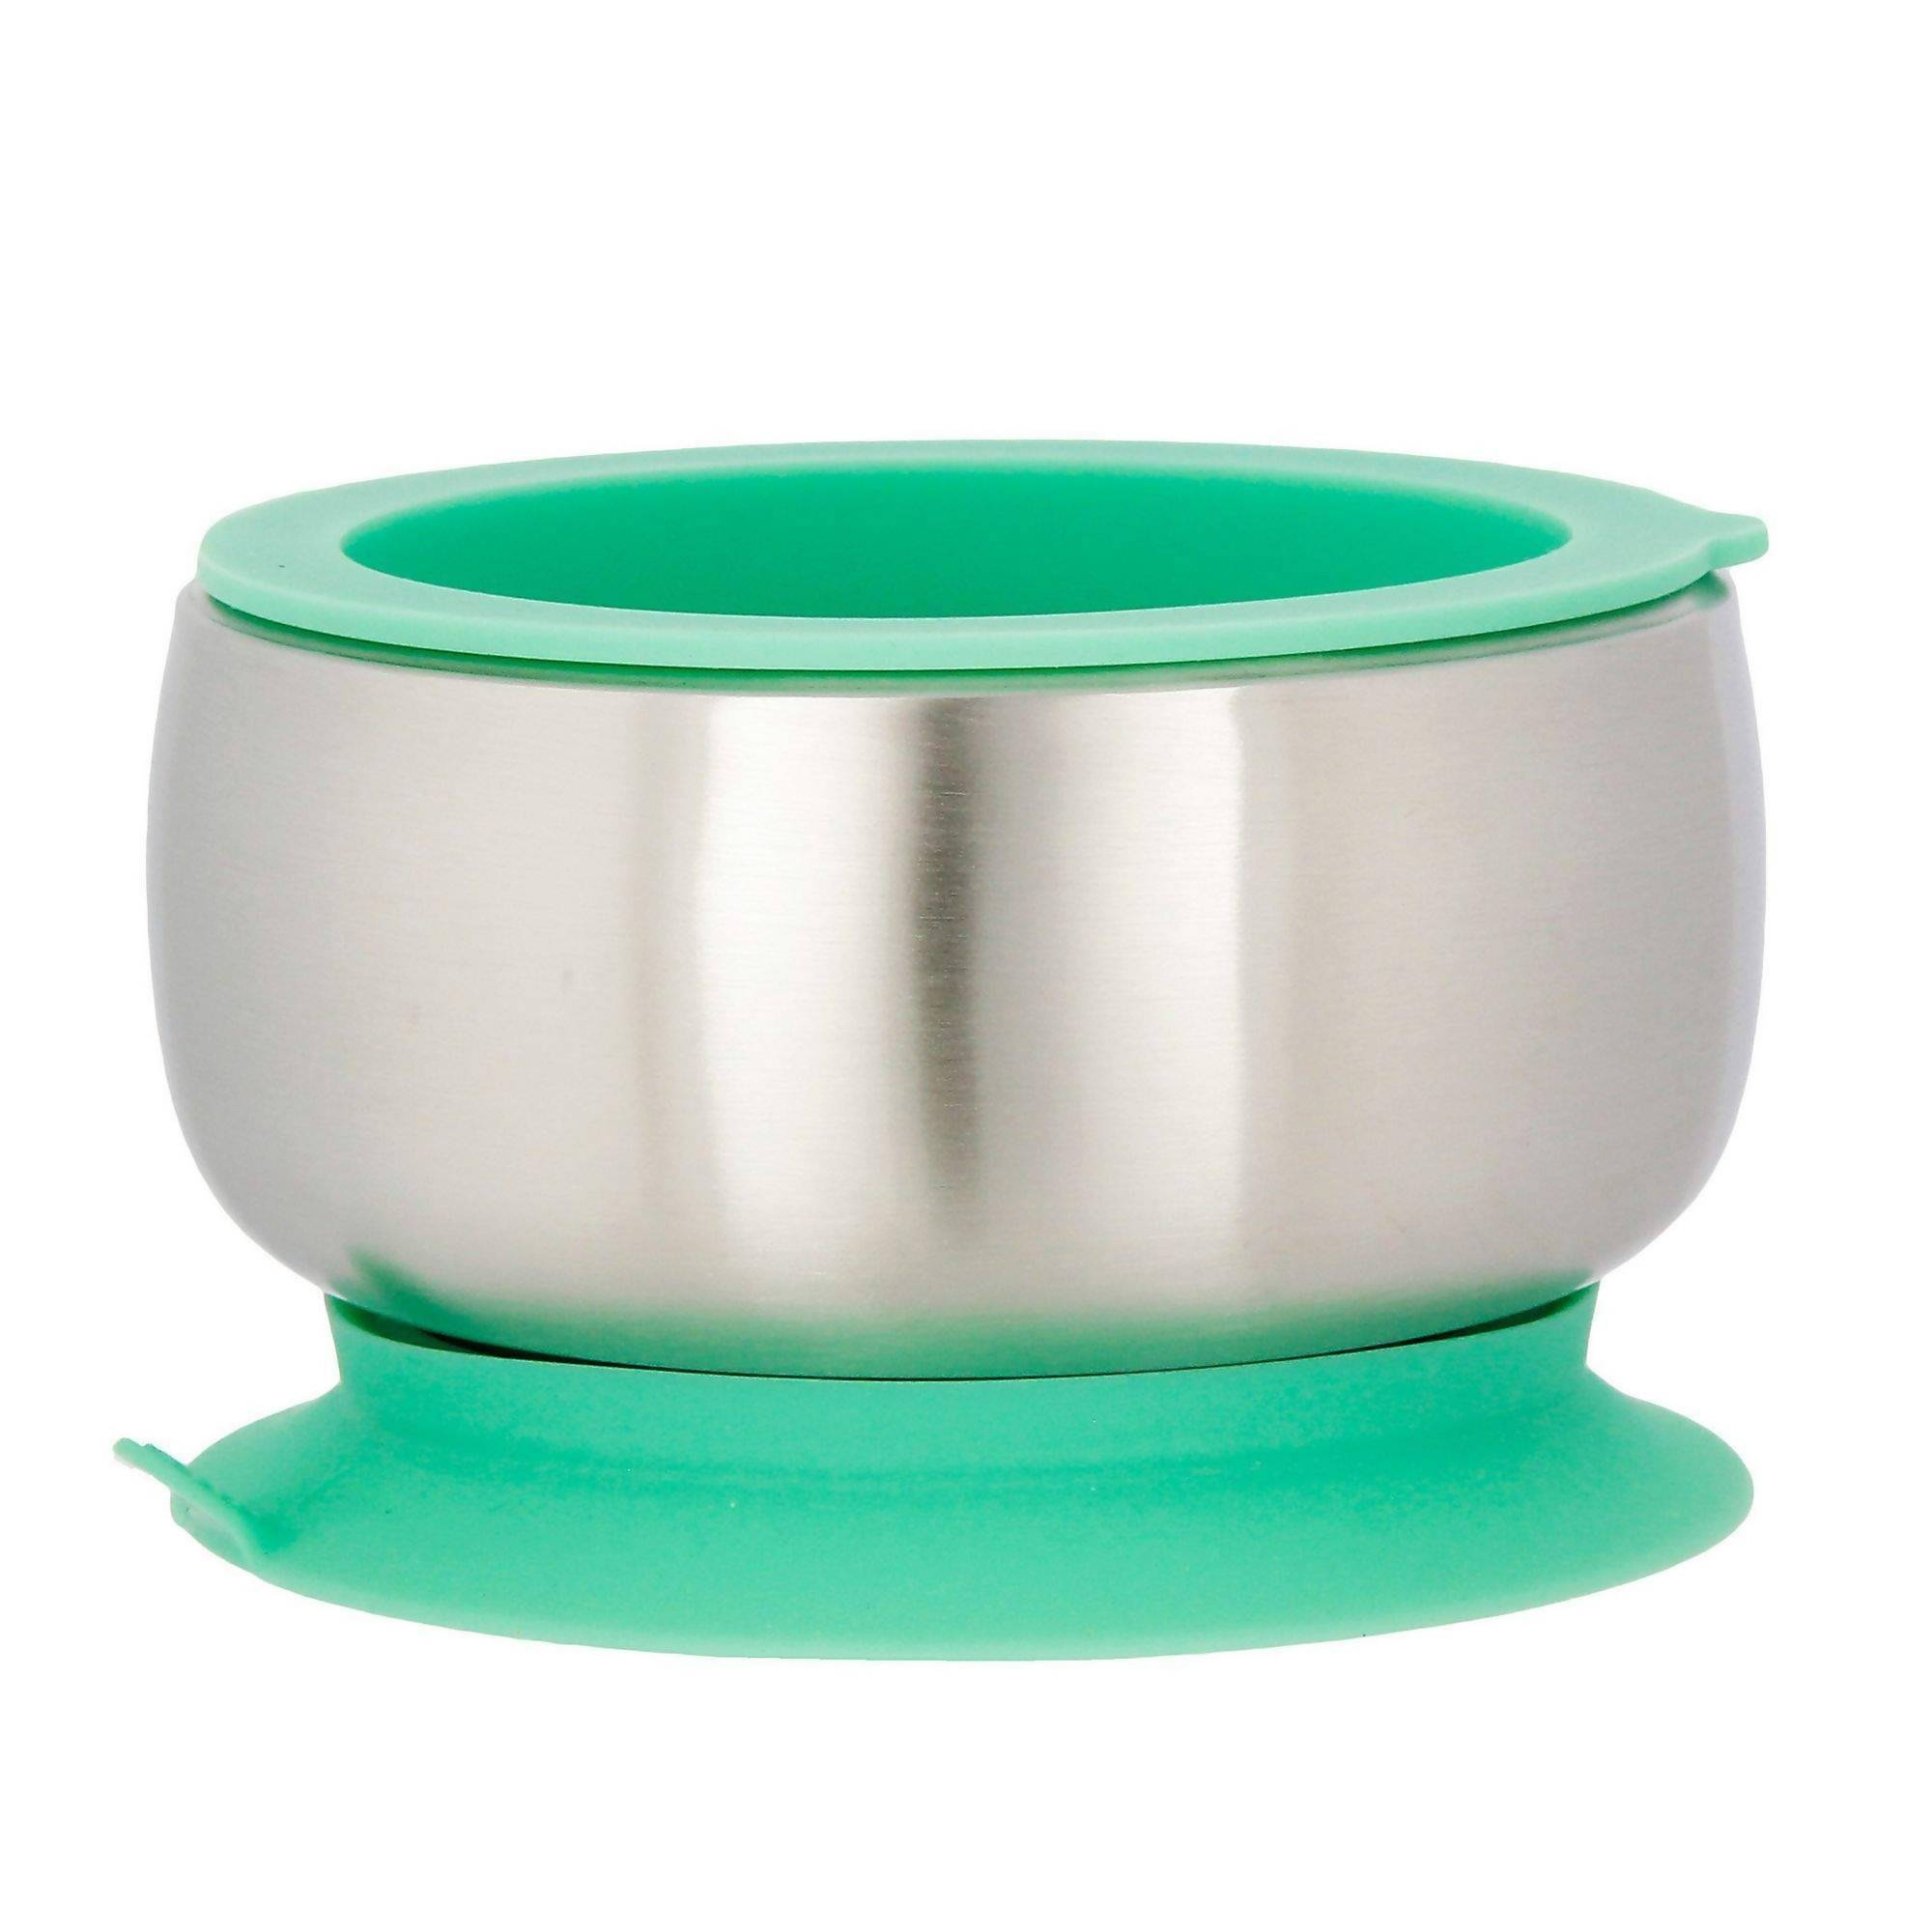 Green Avanchy Stainless Steel Suction Baby Bowl + Lid - Kids Utensils - The Children's Showcase - Naiise